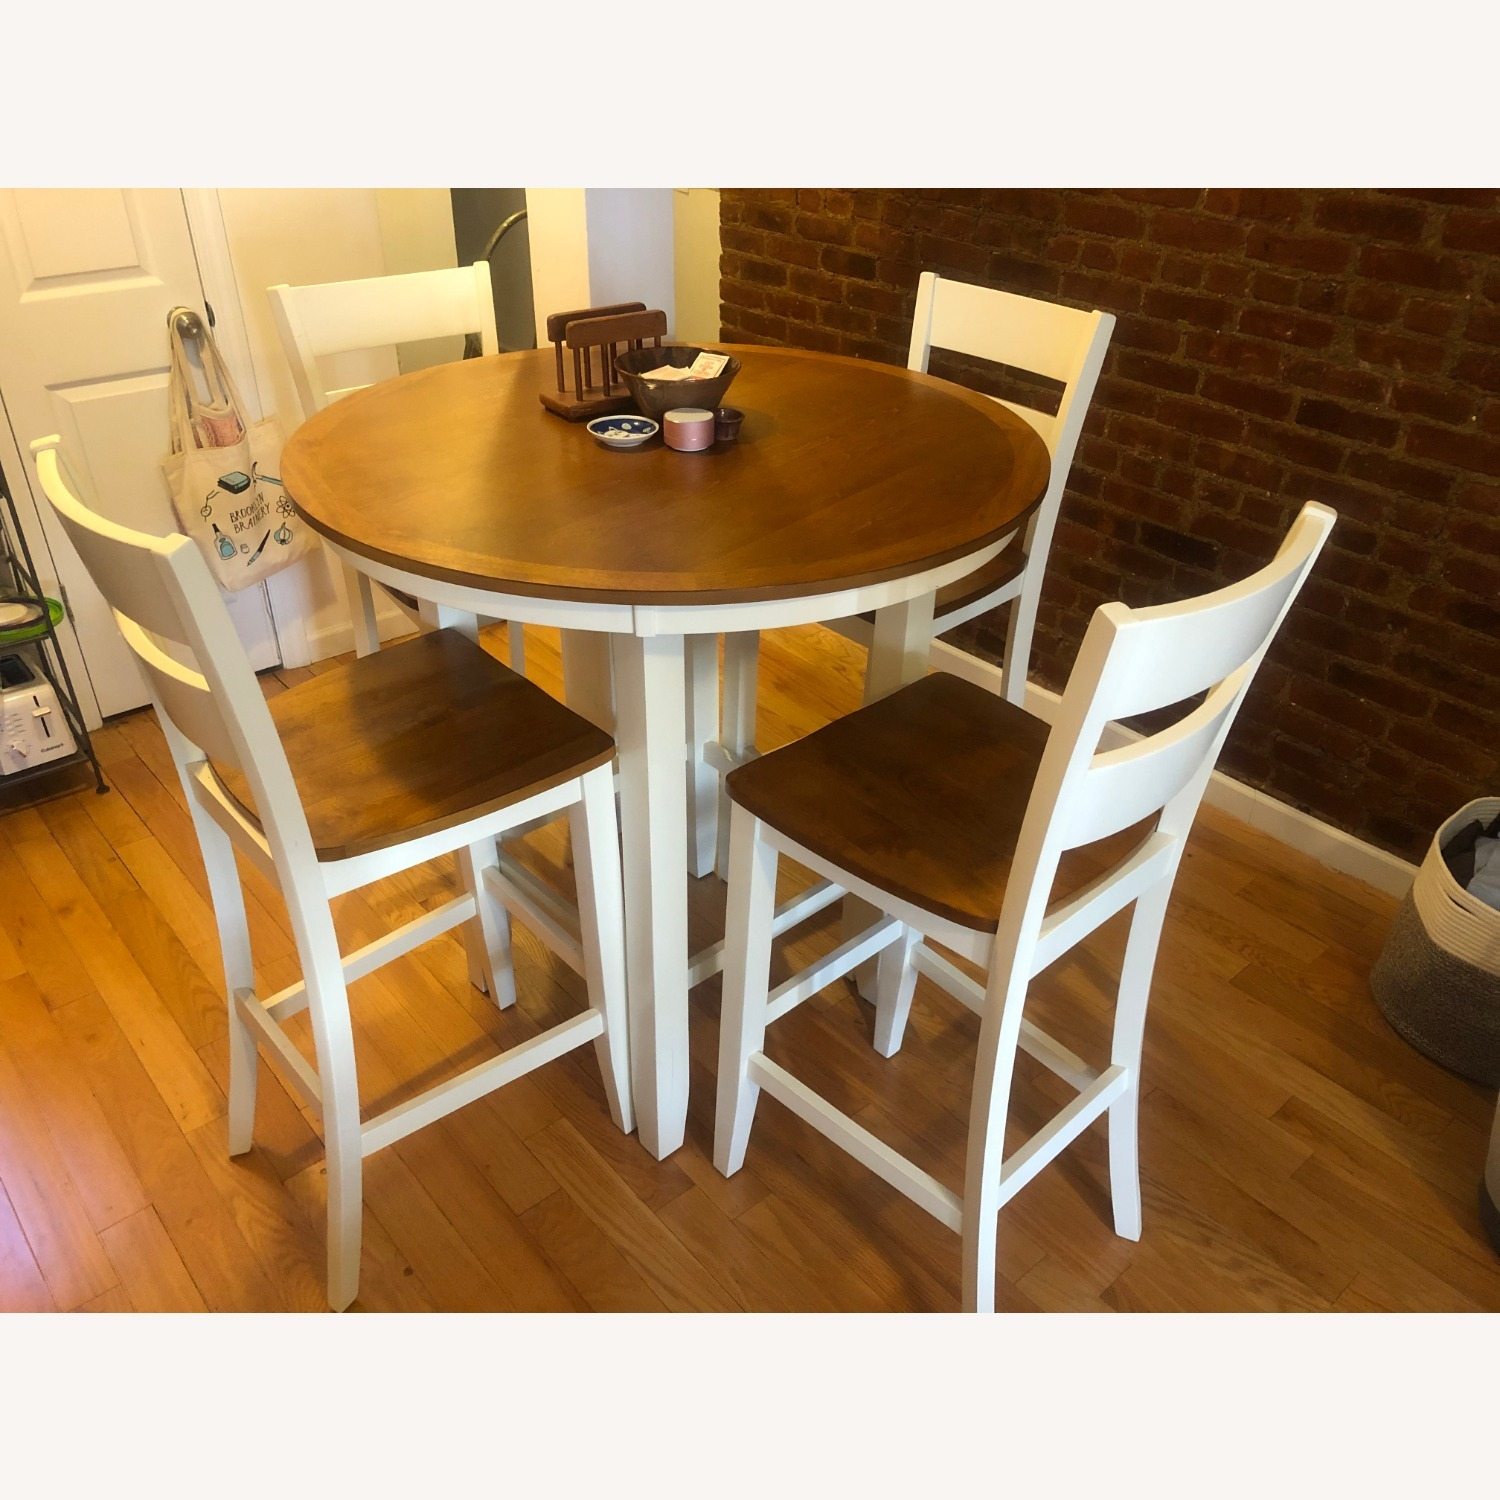 Bar Height Dining Table & Chair Set - image-3